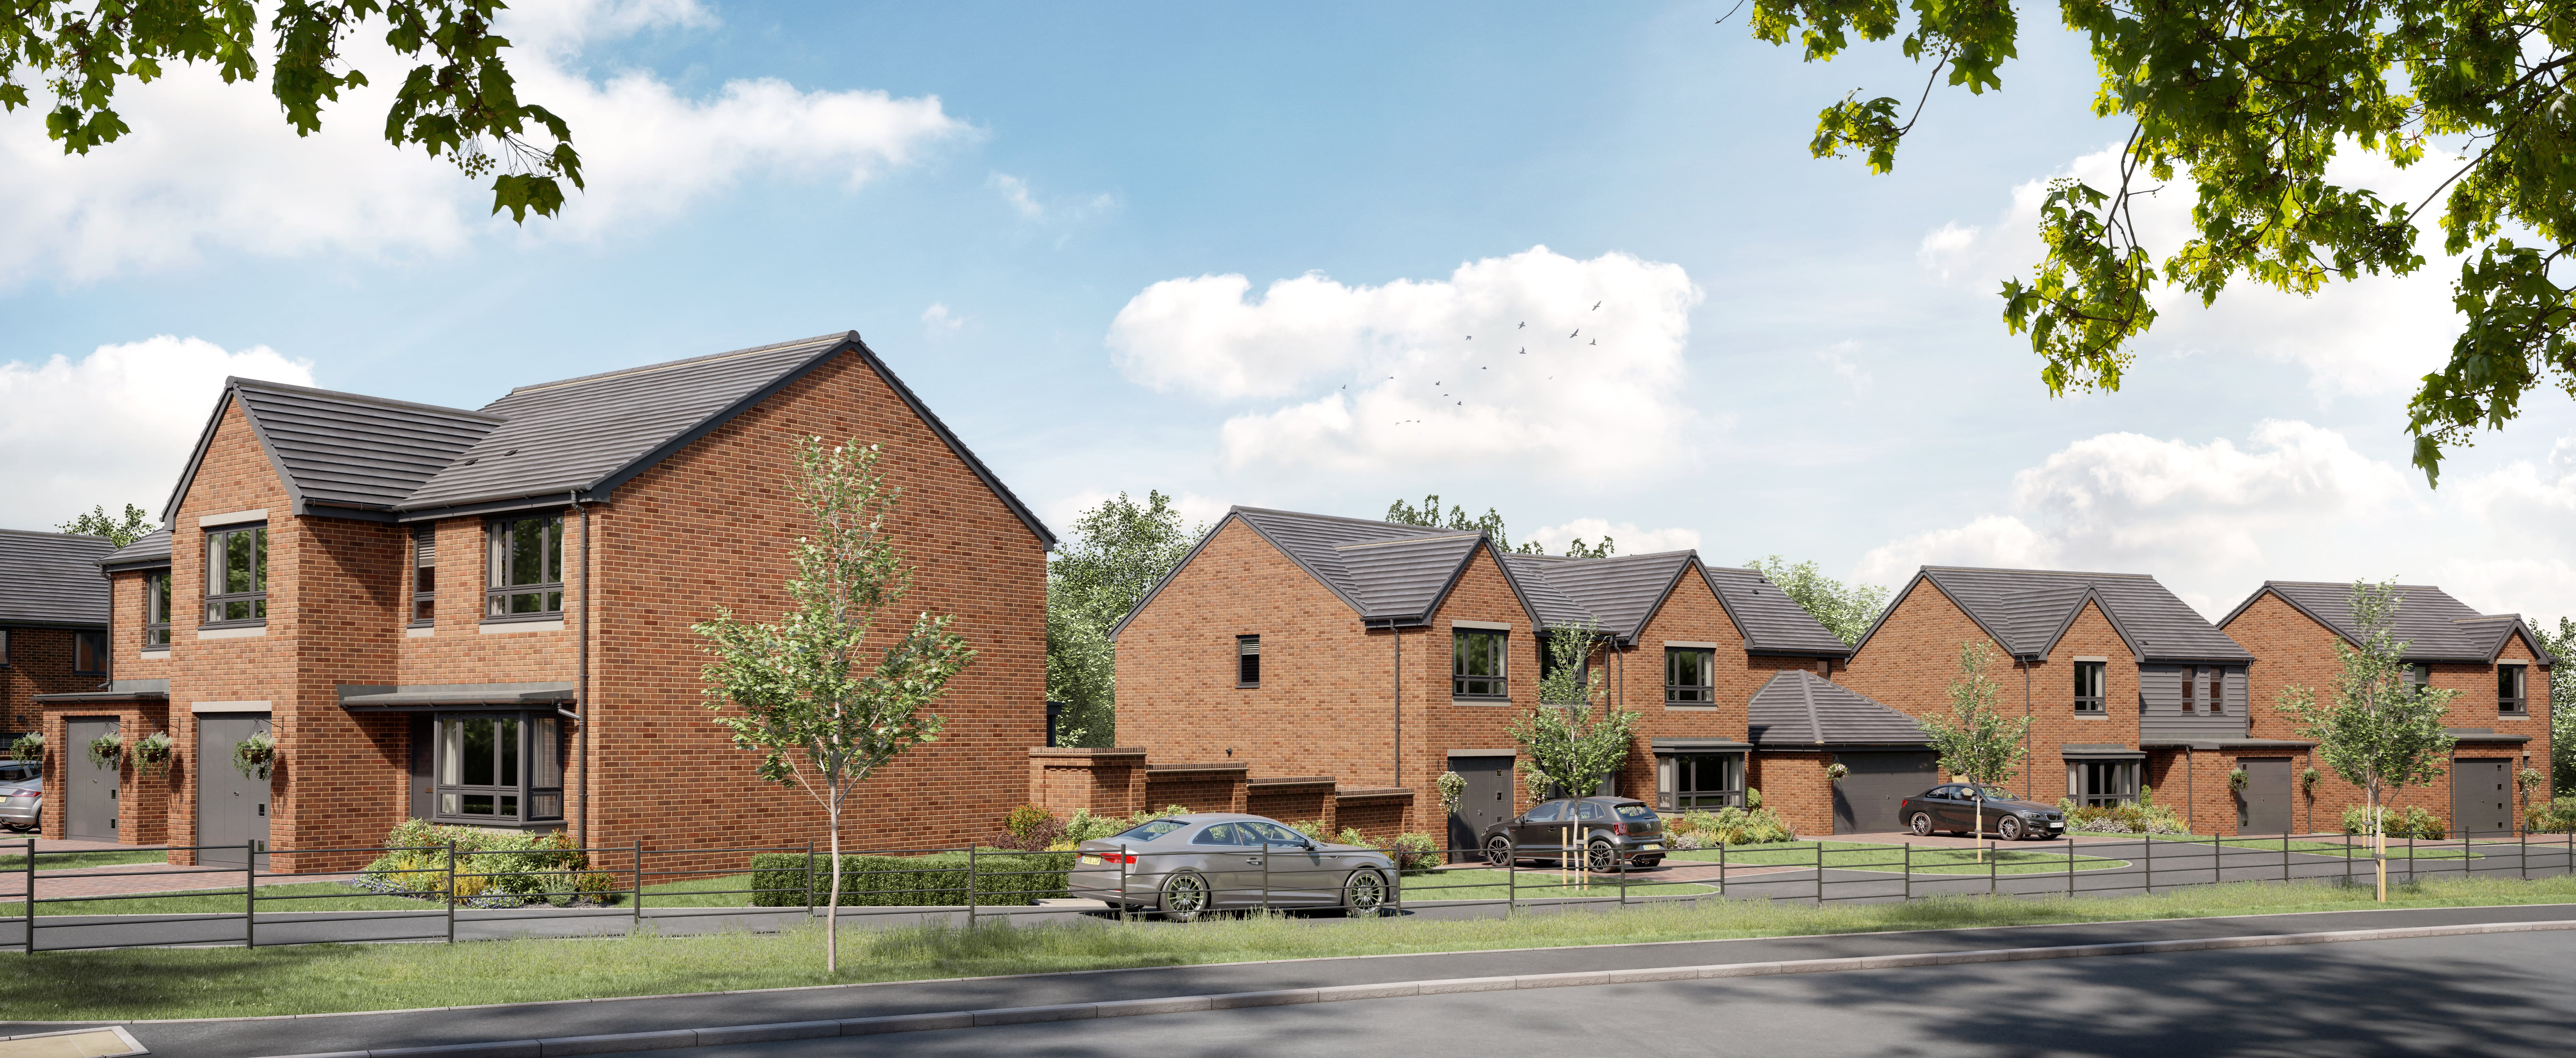 Construction underway on over 230 new homes at Shipley Lakeside